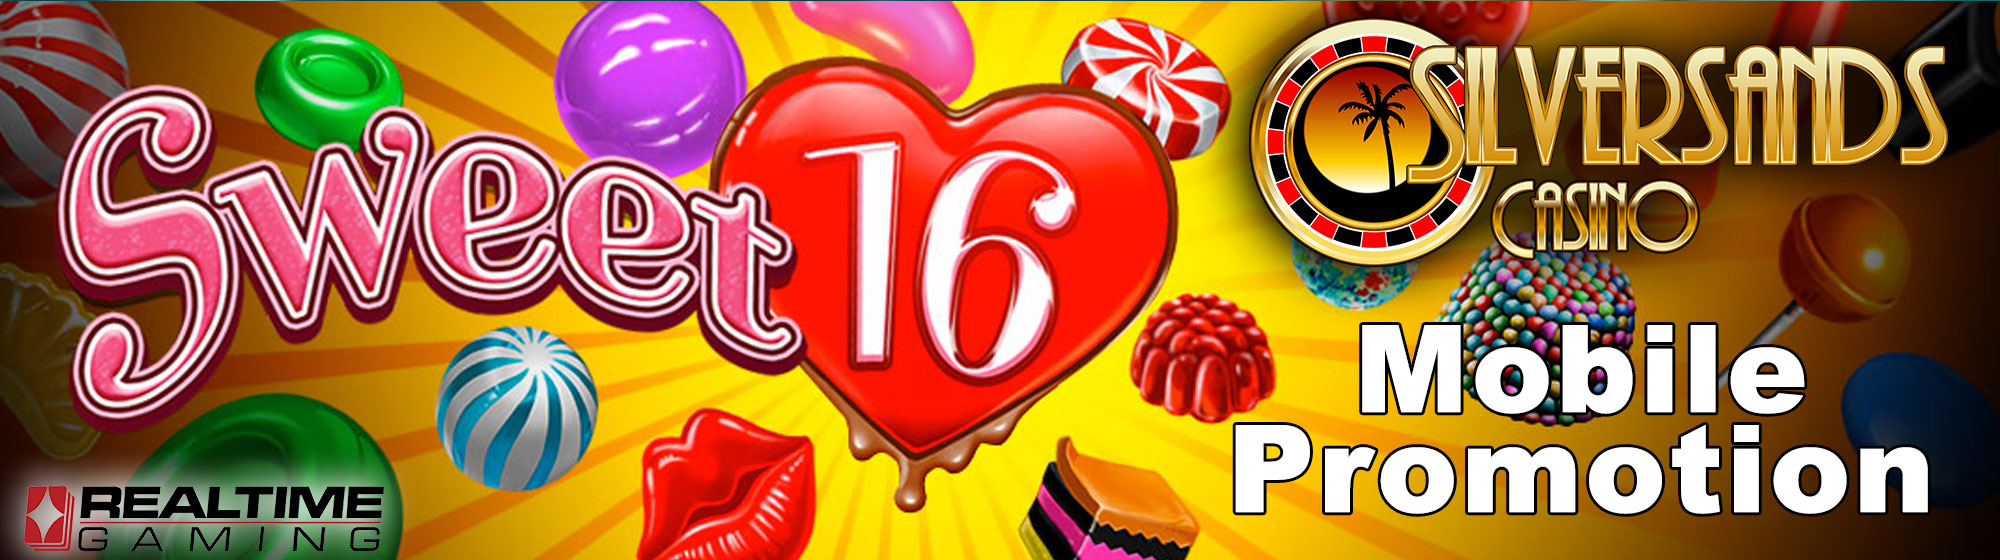 Sweet 16 Mobile Free Spins Promotion